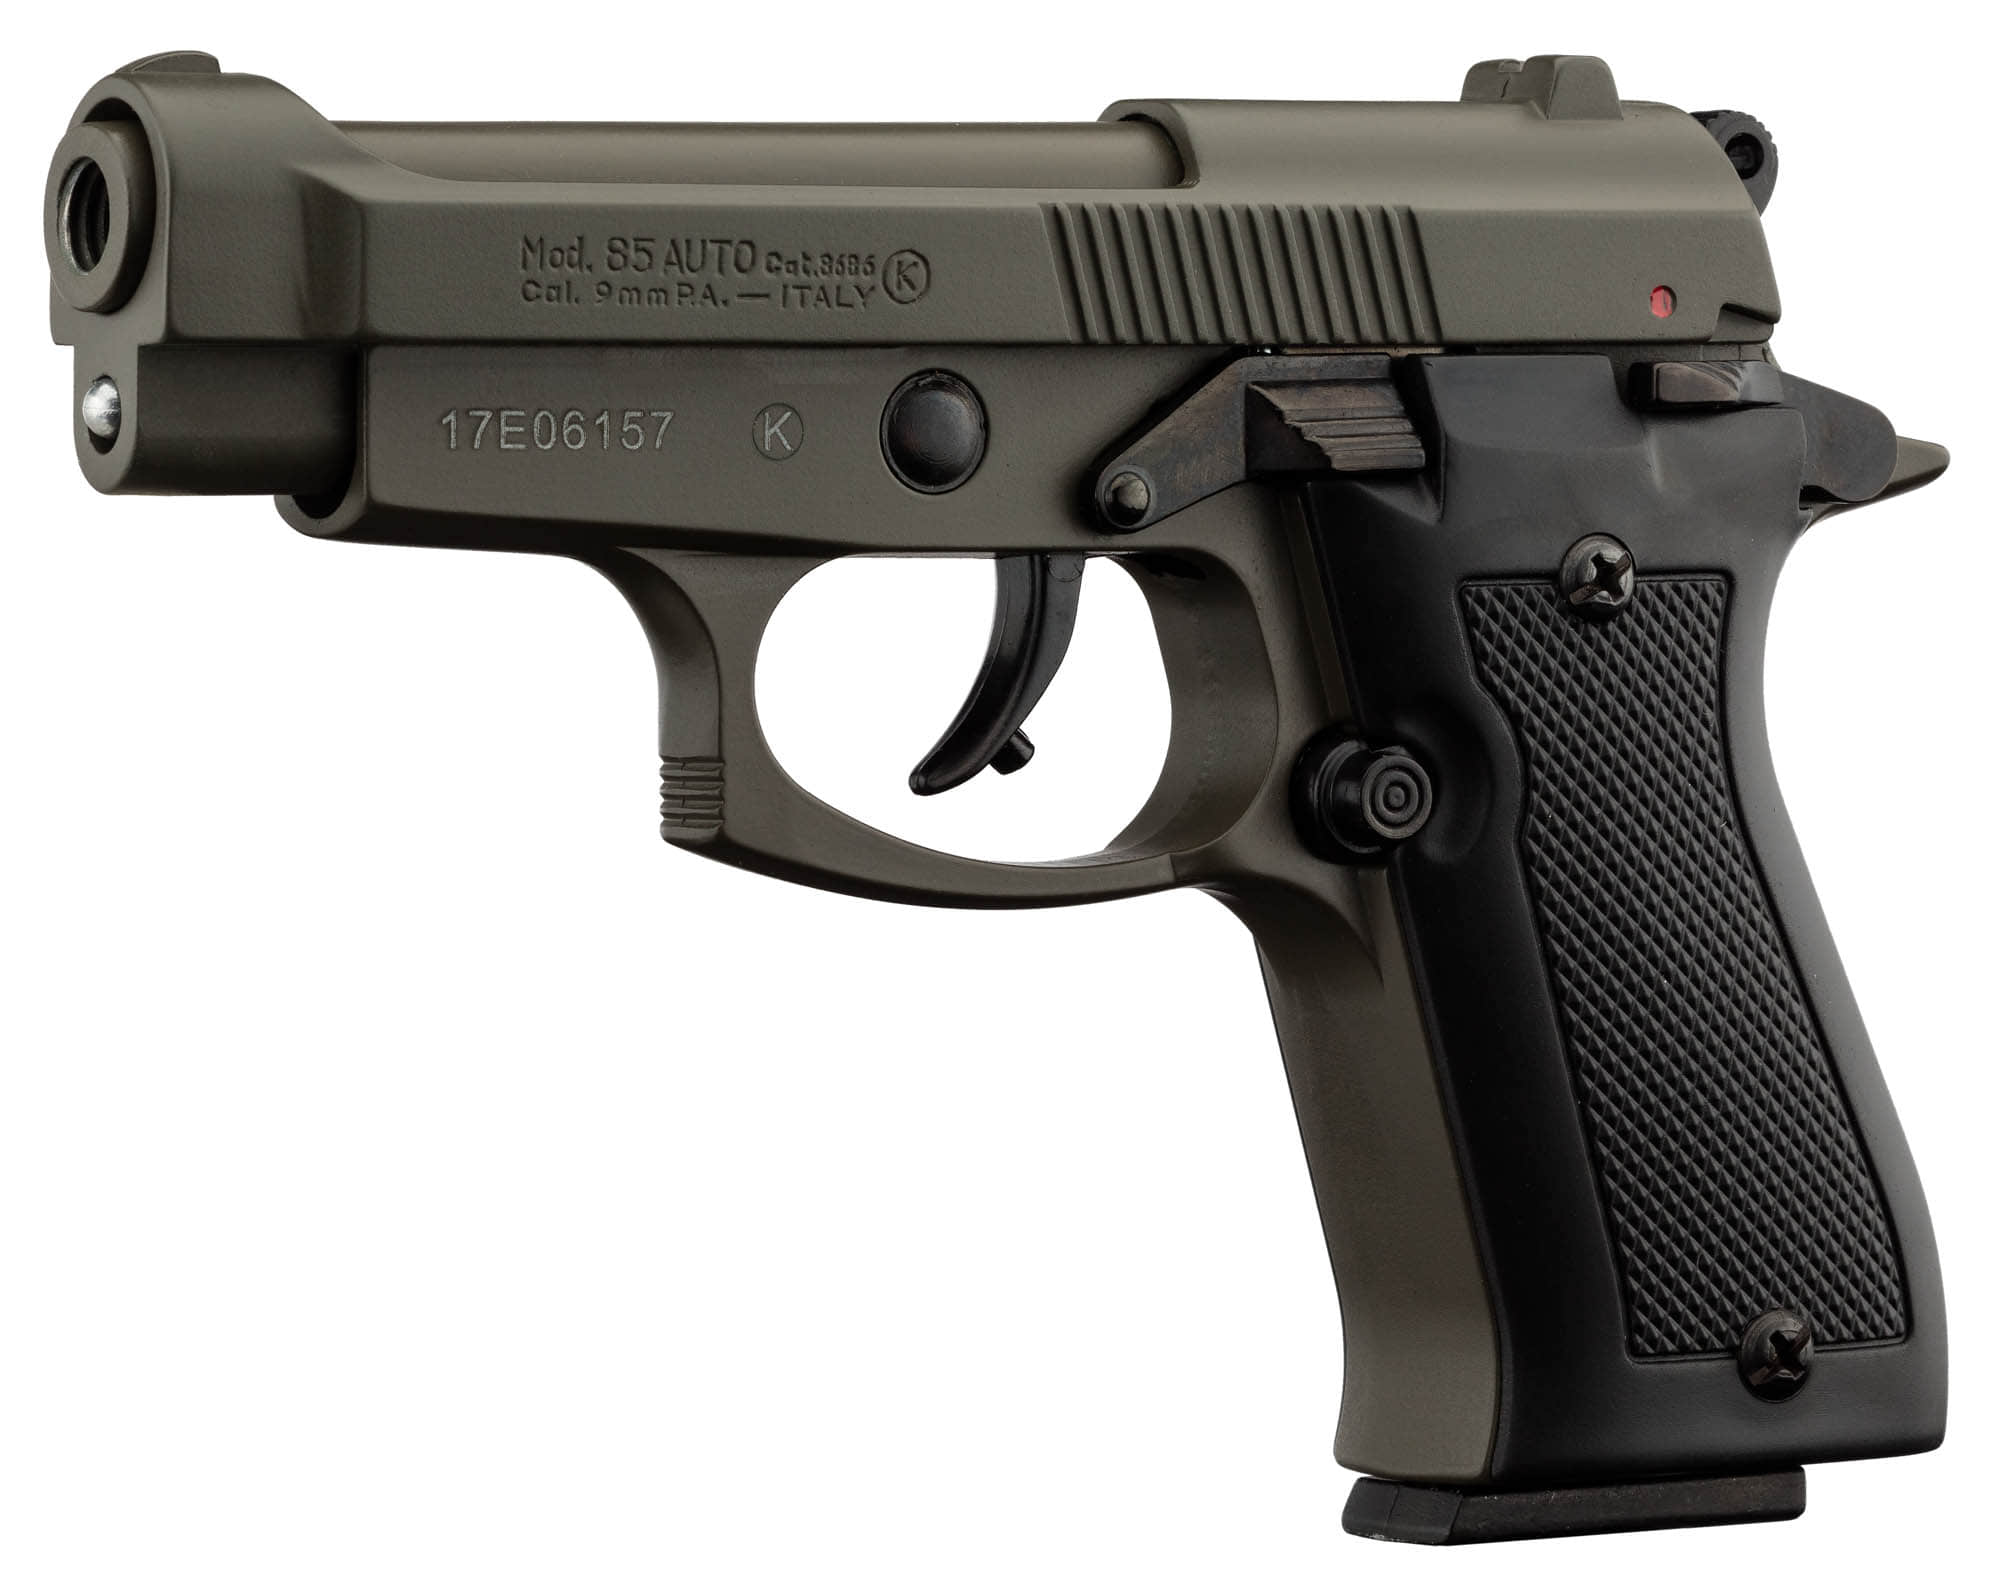 AB229-1-Pistolet Chiappa 85 auto Green - AB229